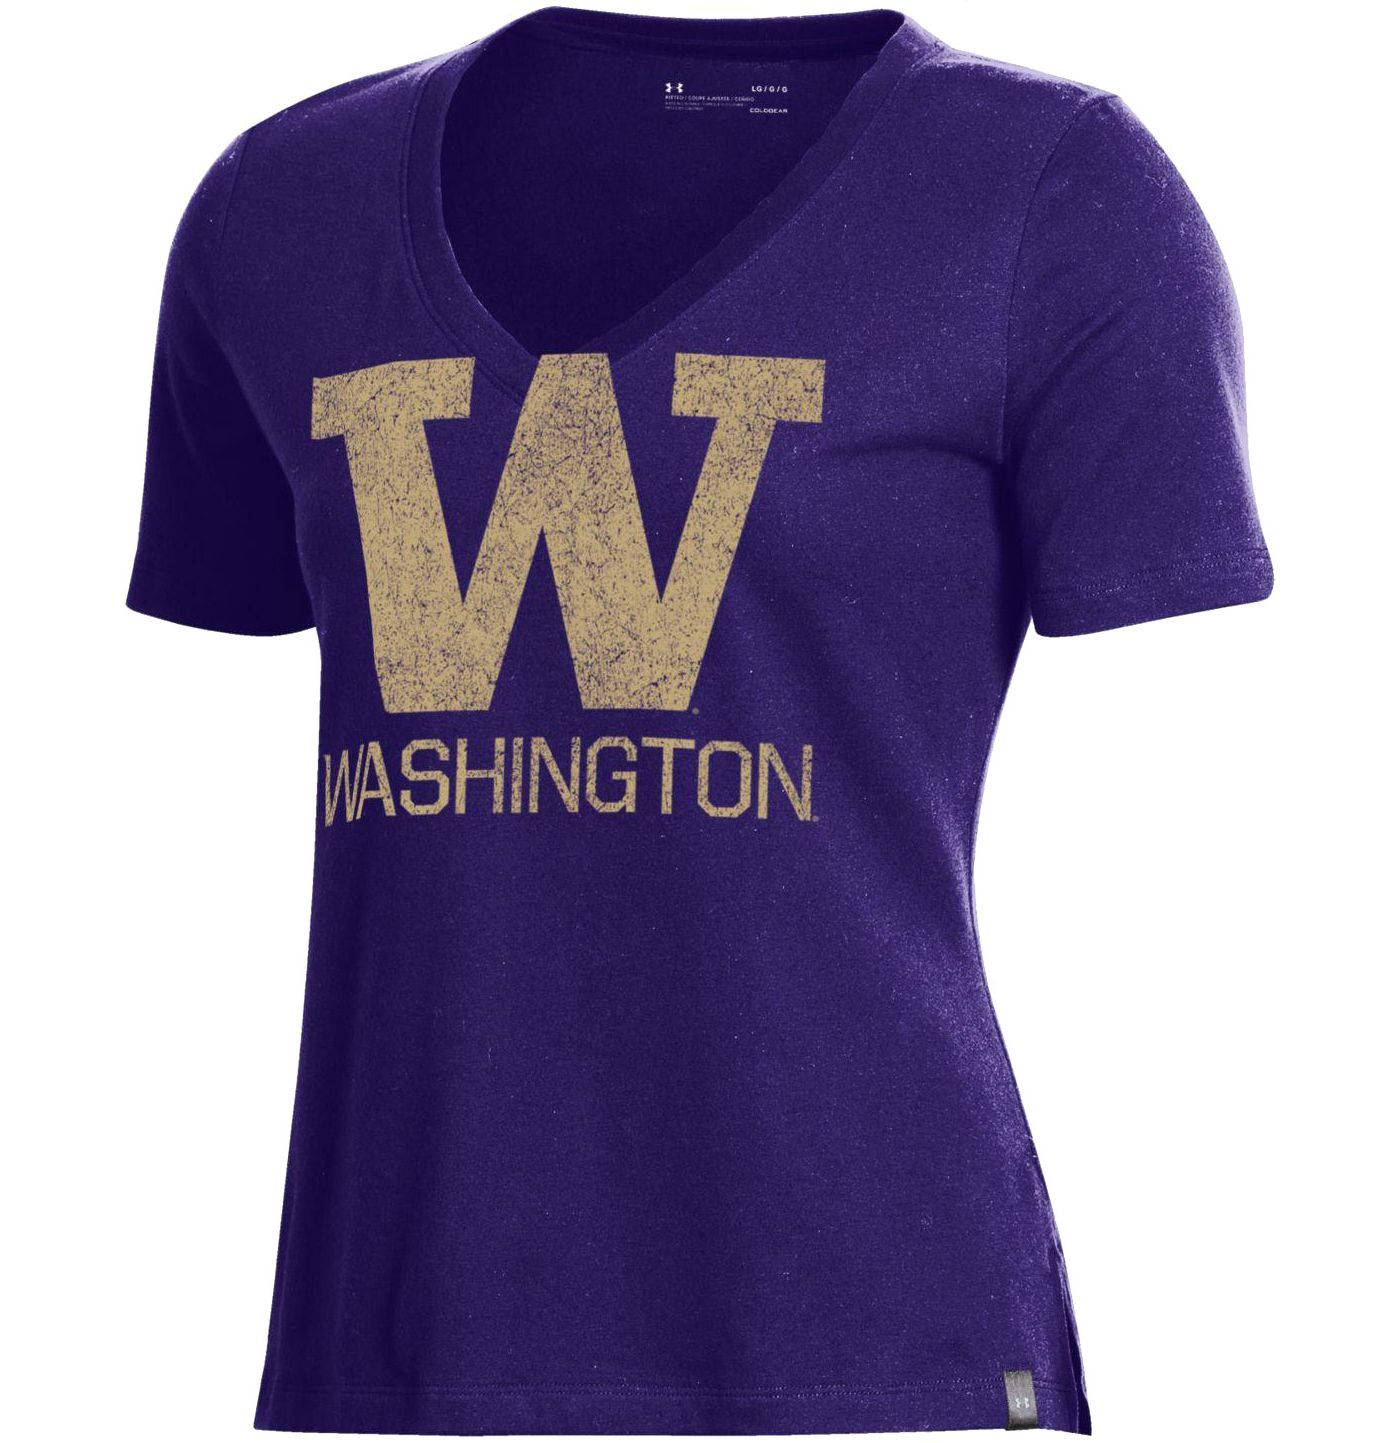 Under Armour Women's Washington Huskies Purple Performance V-Neck T-Shirt